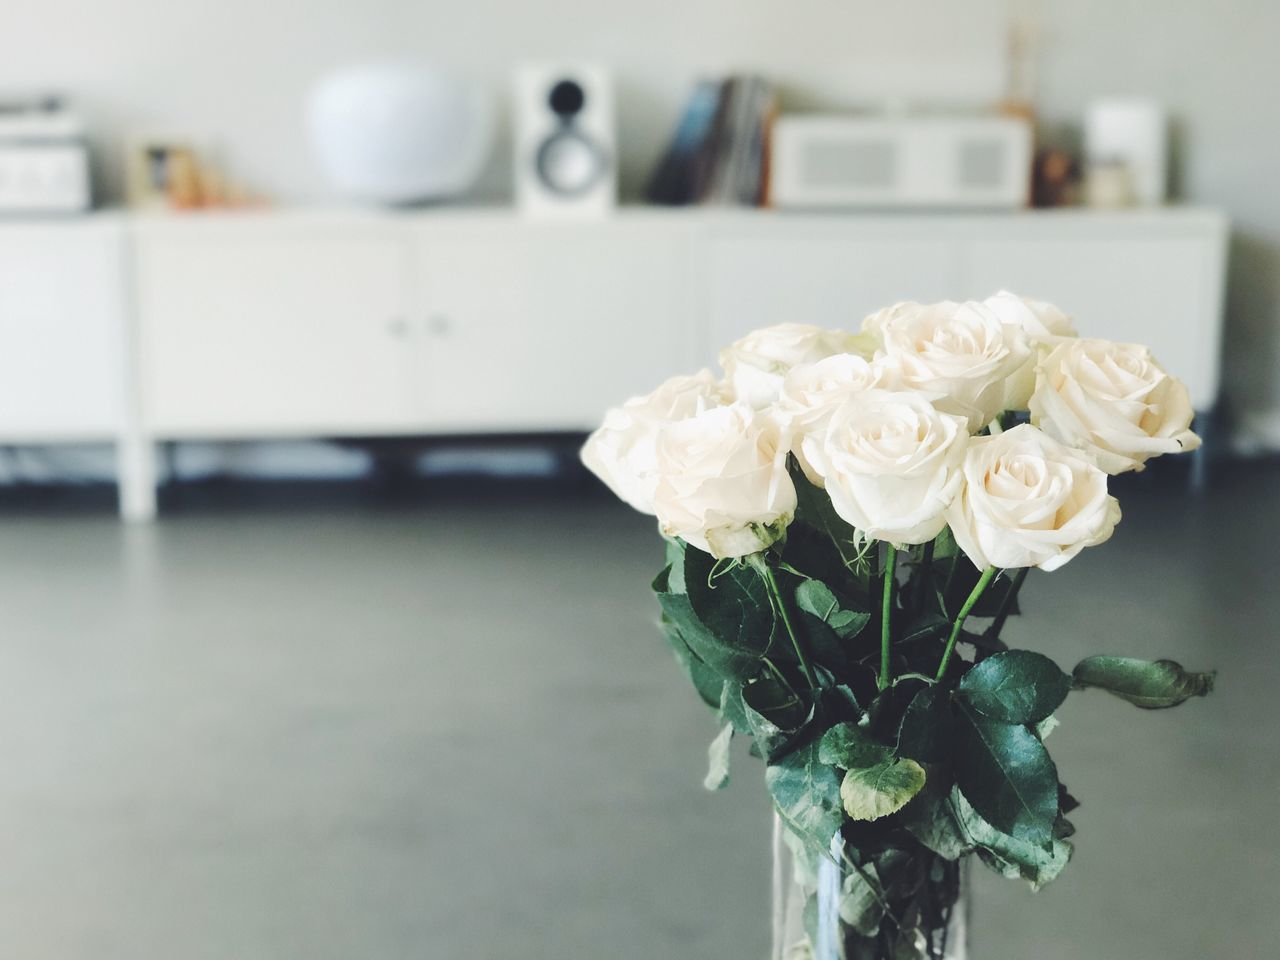 Flower Rose - Flower Focus On Foreground Indoors  White Color No People Vase Close-up Flower Head Fragility Petal Freshness Nature Table Leaf Plant Bouquet Beauty In Nature Day